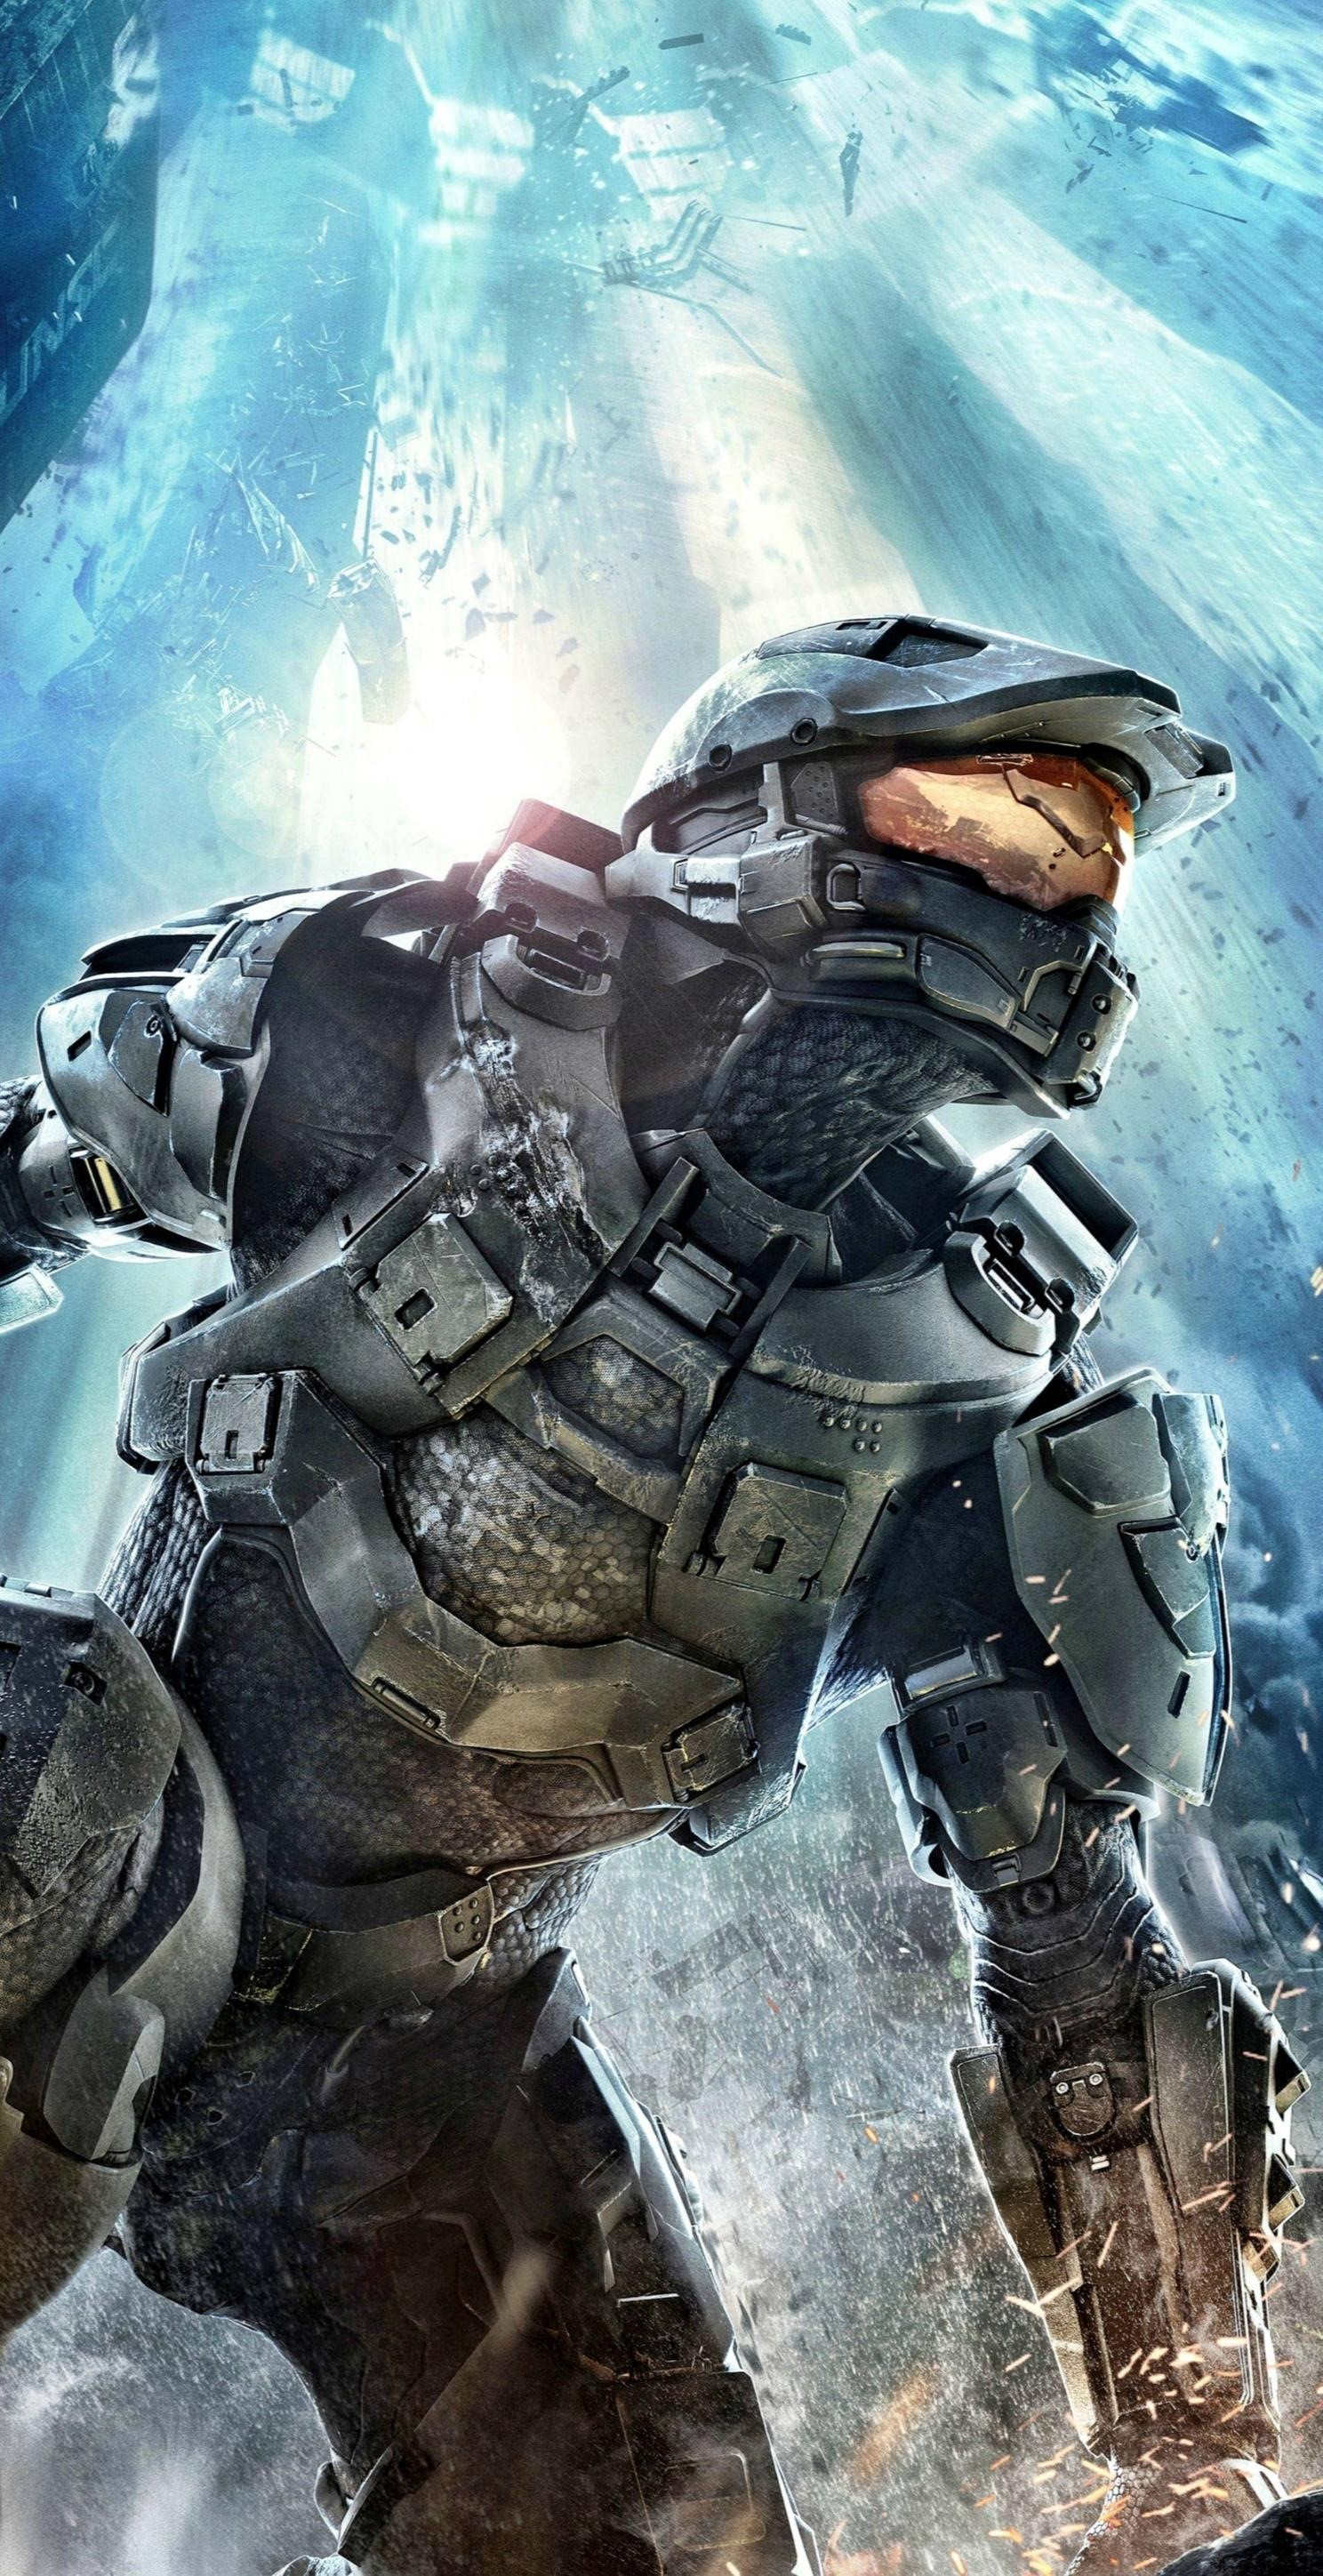 Did you know that there is such a thing as a full-size adult Halo Master  Chief costume? And Halo 4 is an amazing game to play! Highly recommend it!